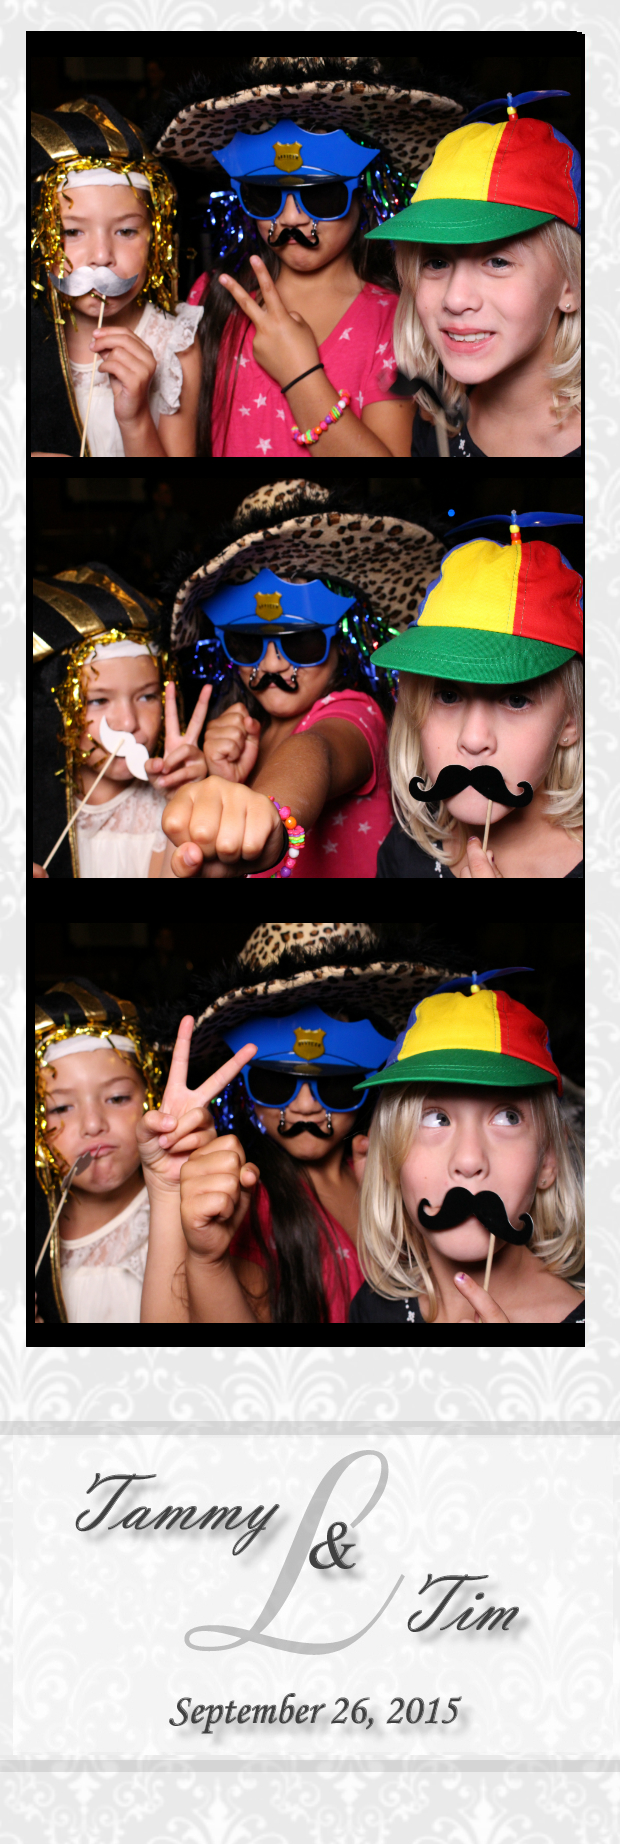 Guest House Events Photo Booth Strips T&T (21).jpg